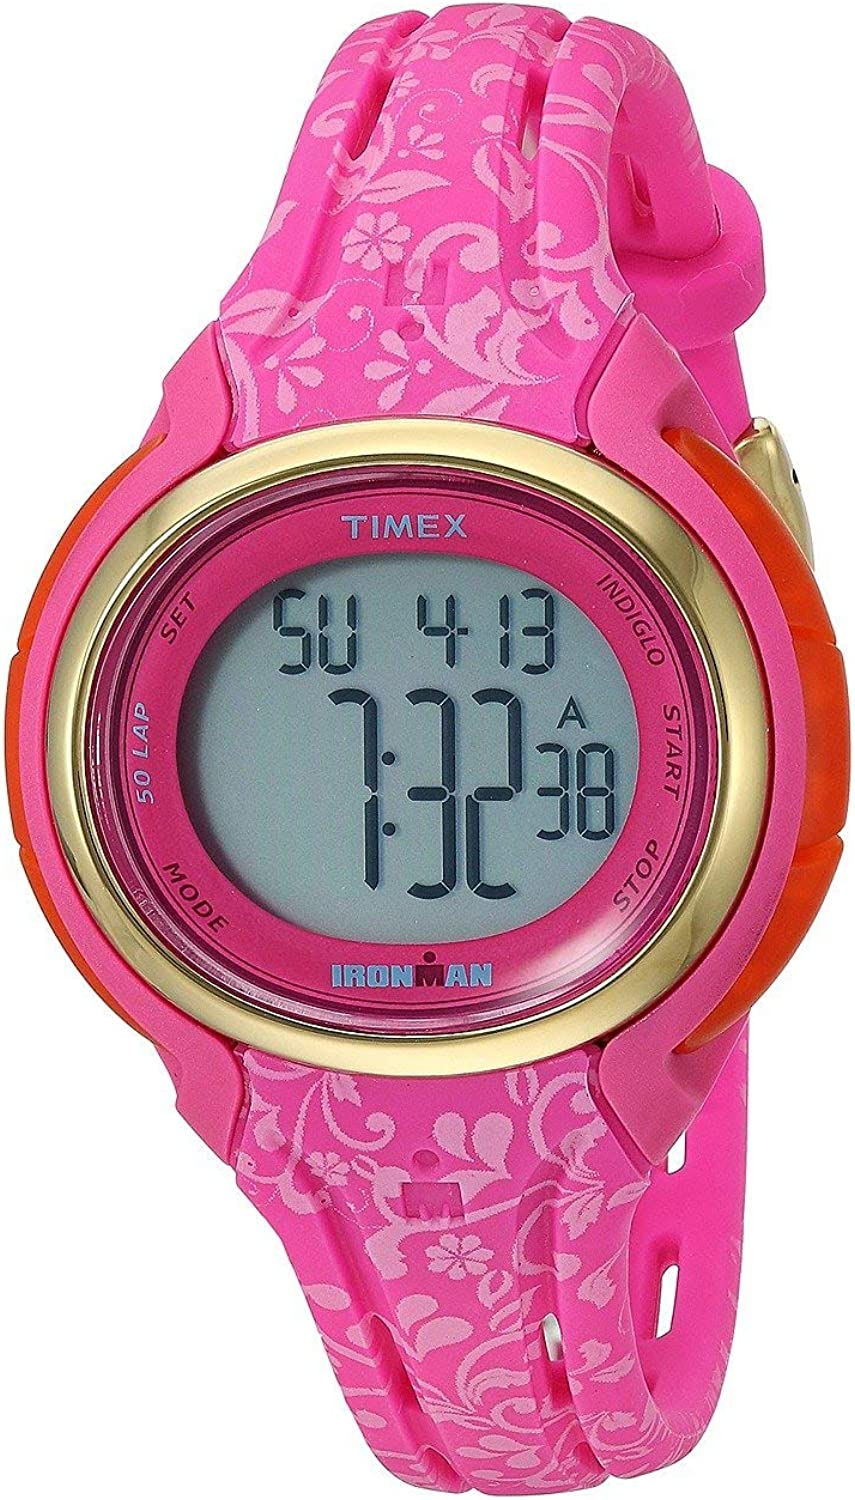 Timex Women s Ironman Sleek 50 Mid-Size